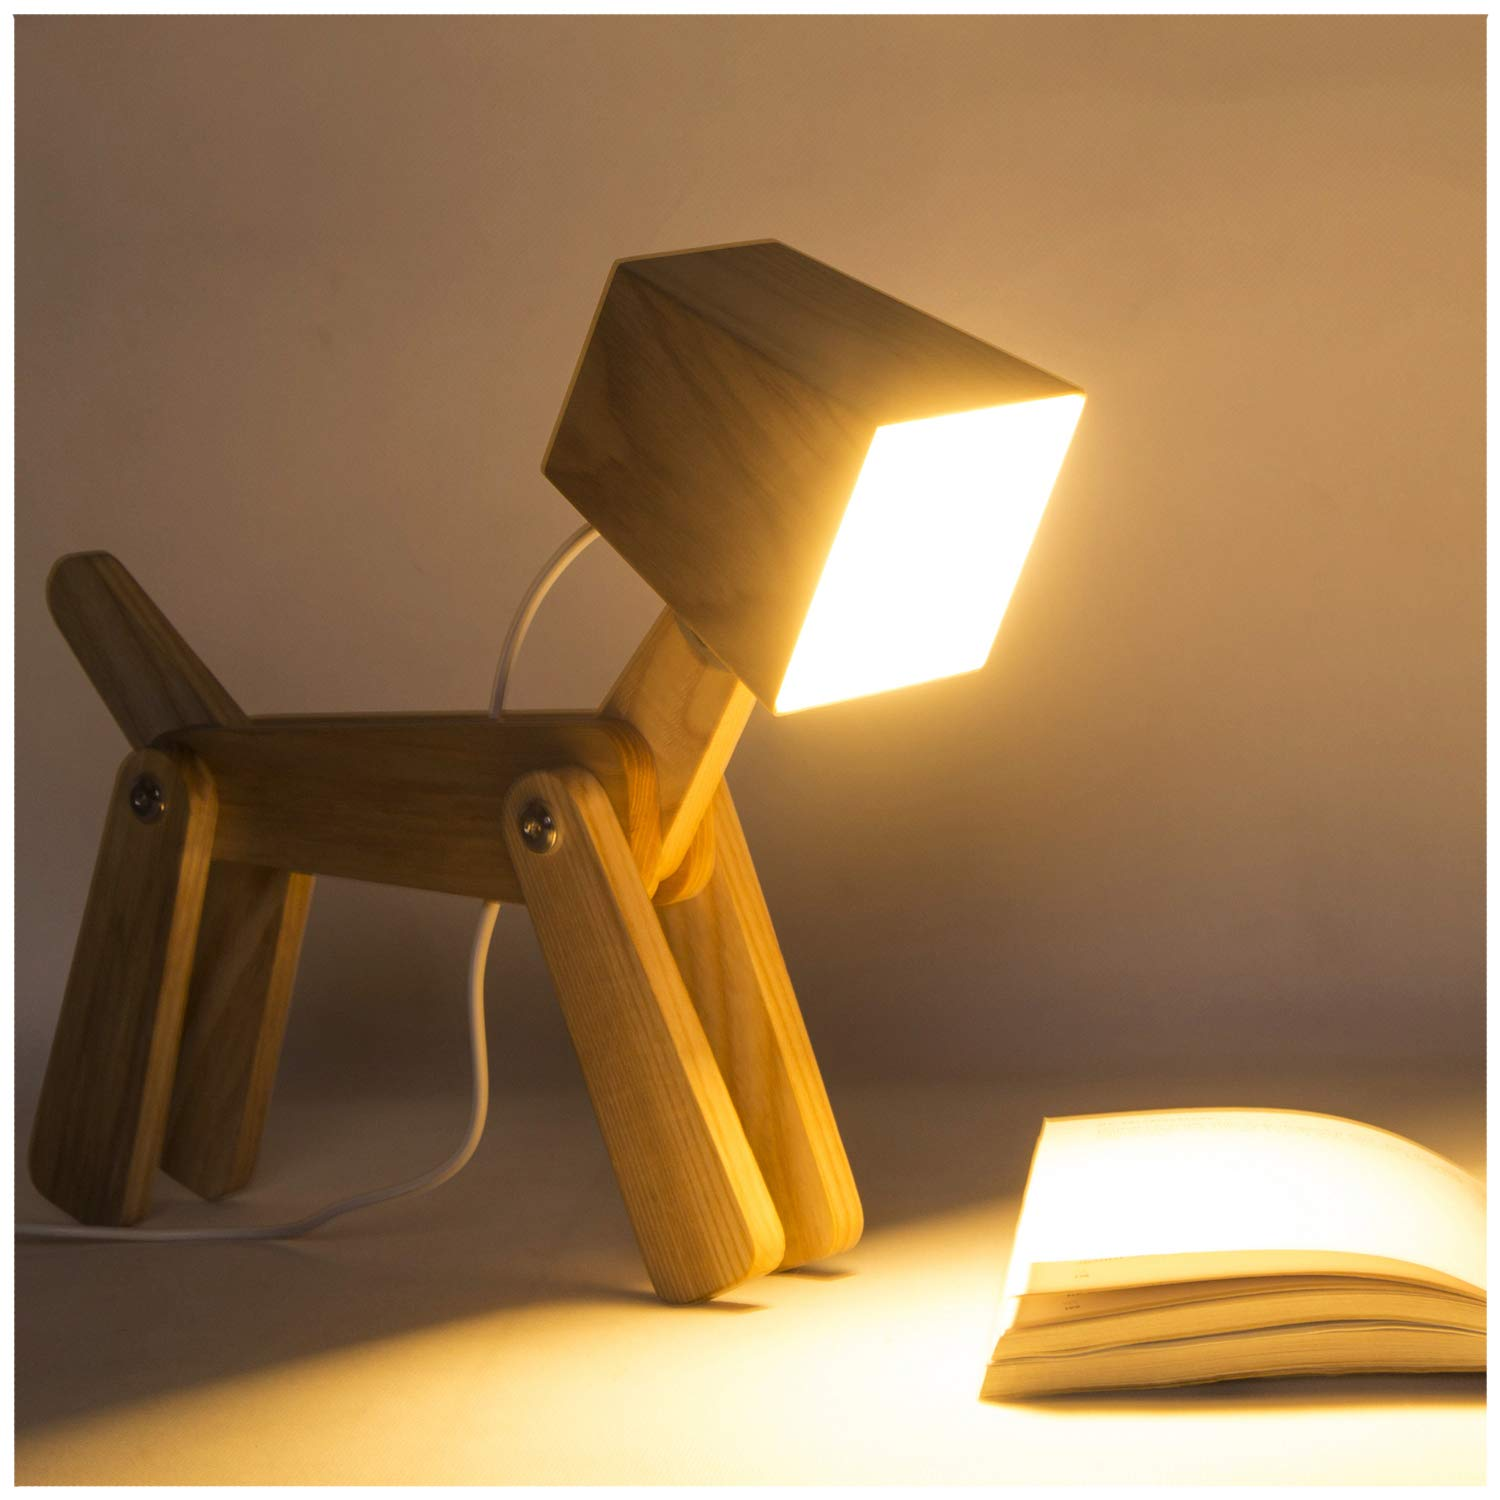 HROOME Cute Wooden Dog Design Adjustable Dimmable Bedside Table Lamp Touch Control 6W for Bedroom